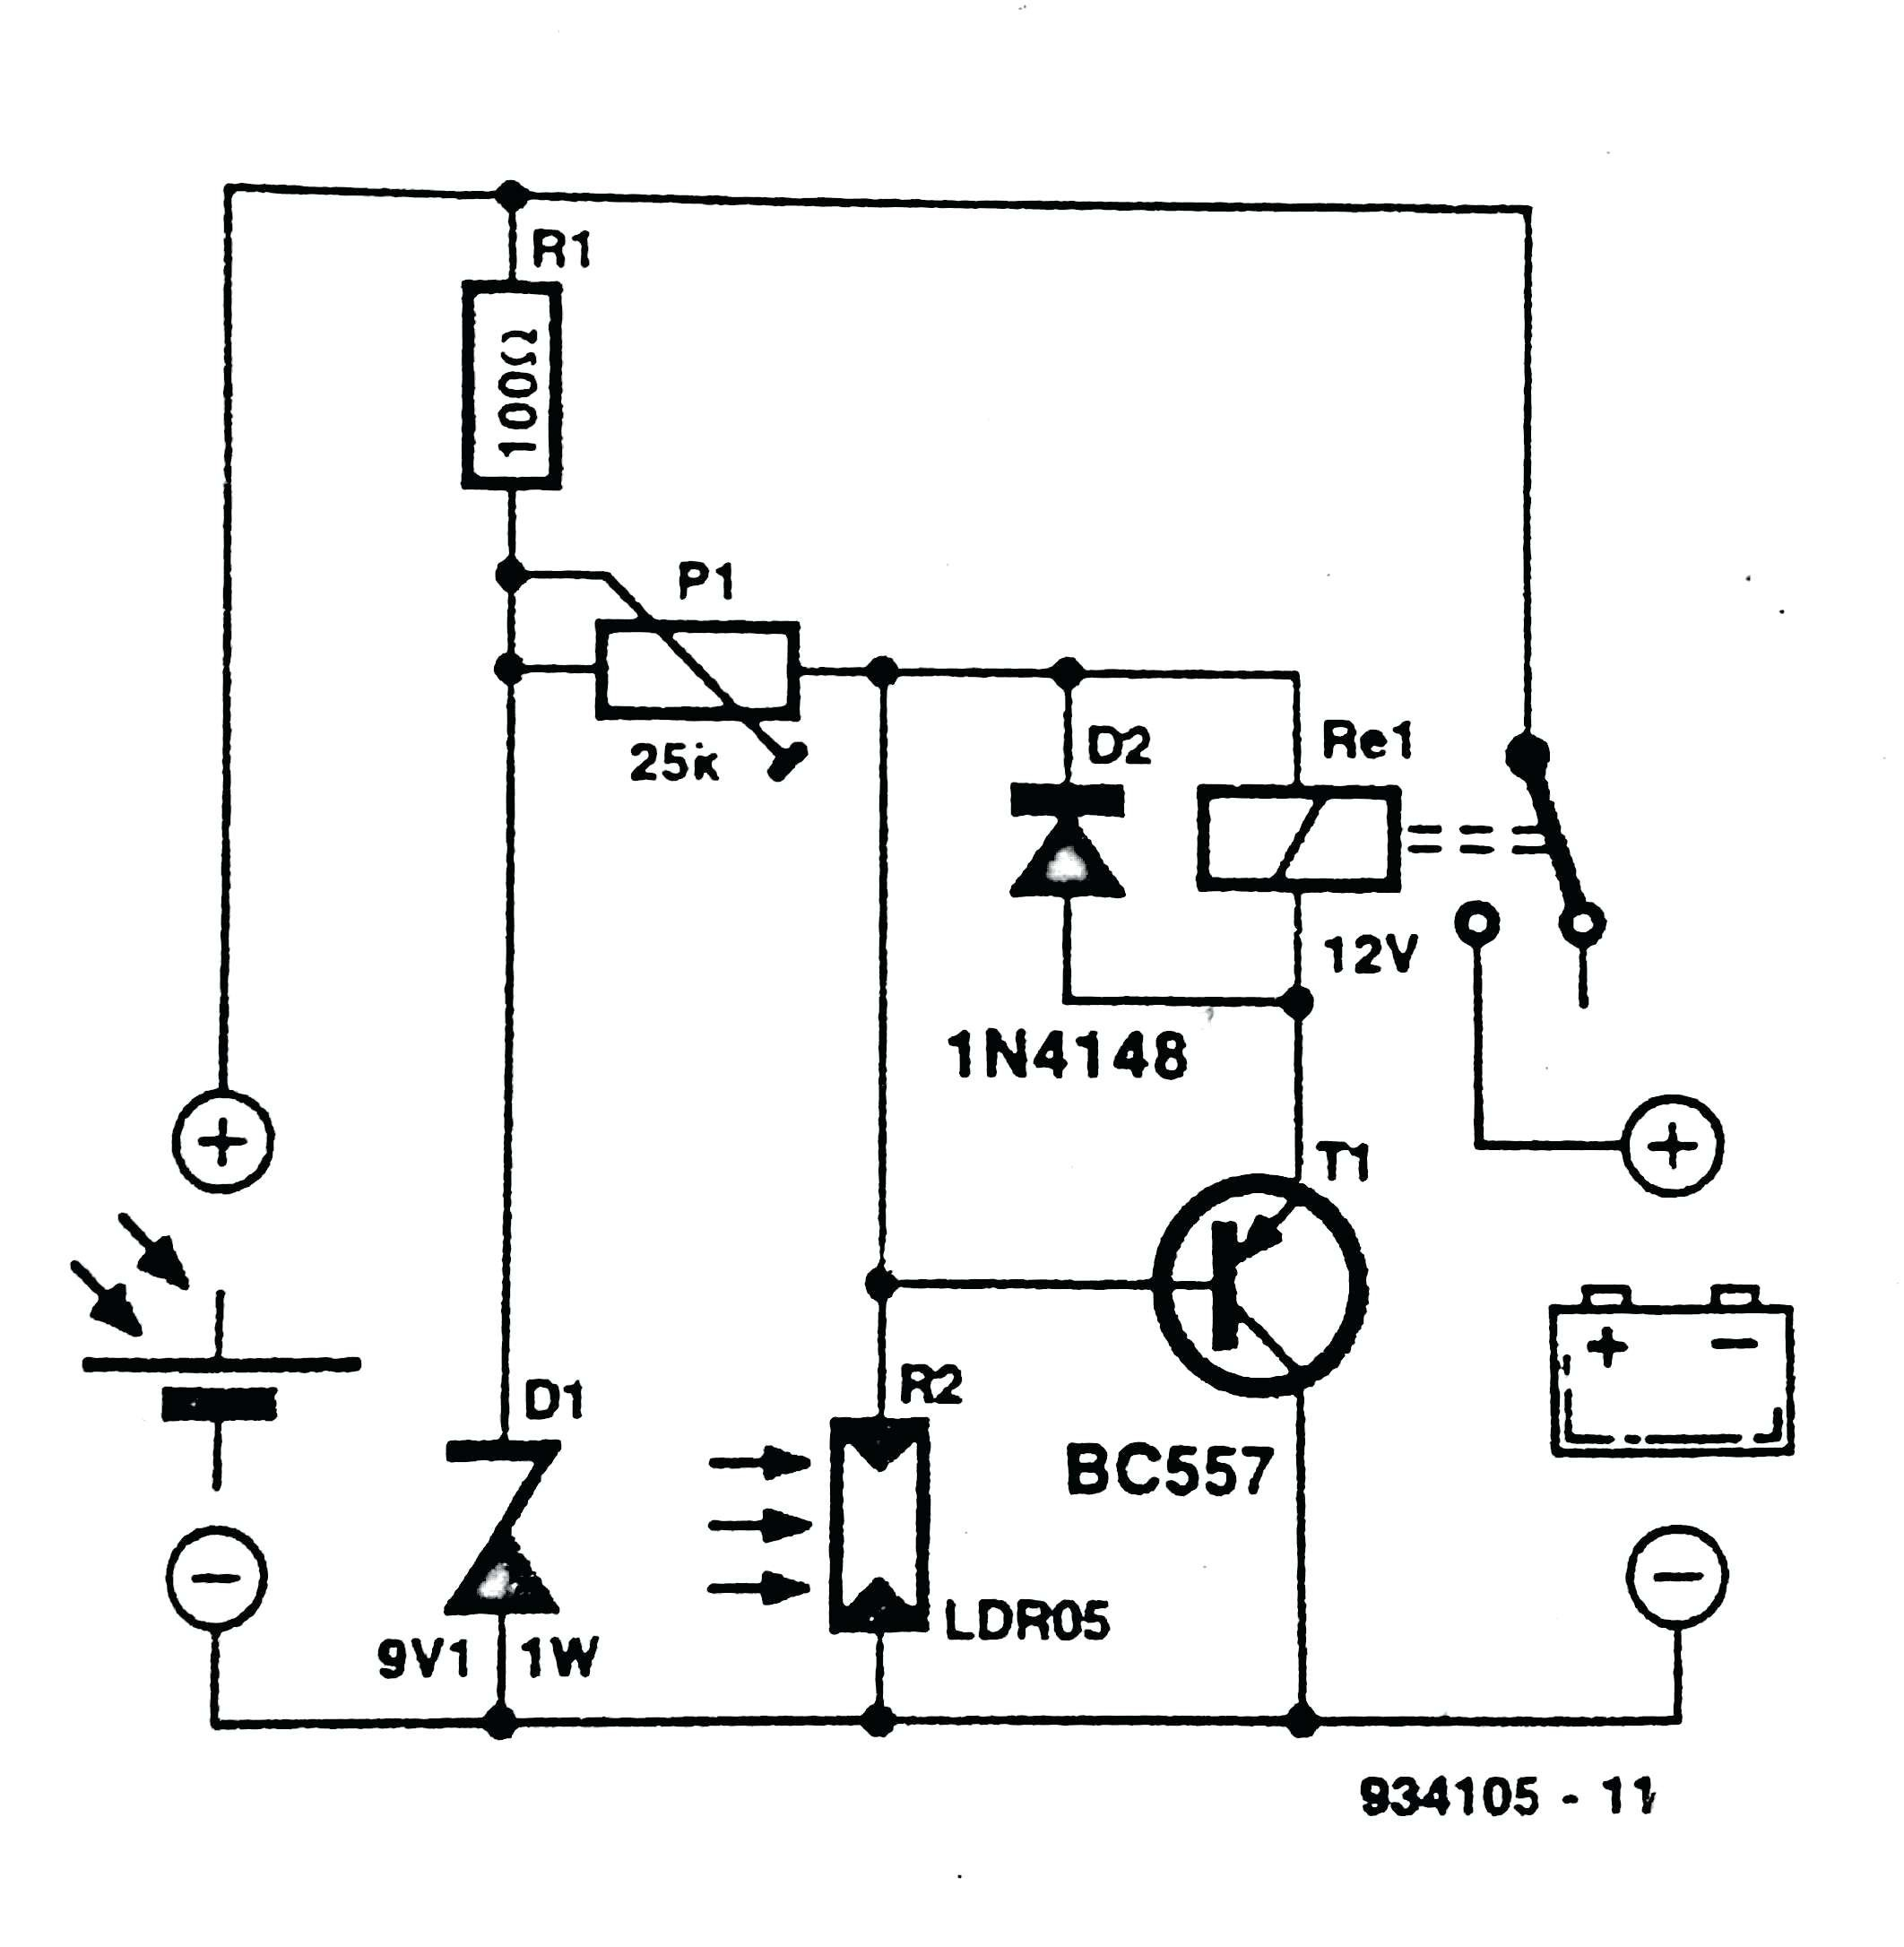 Fronius Inverter Wiring Diagram $ Apktodownload.com